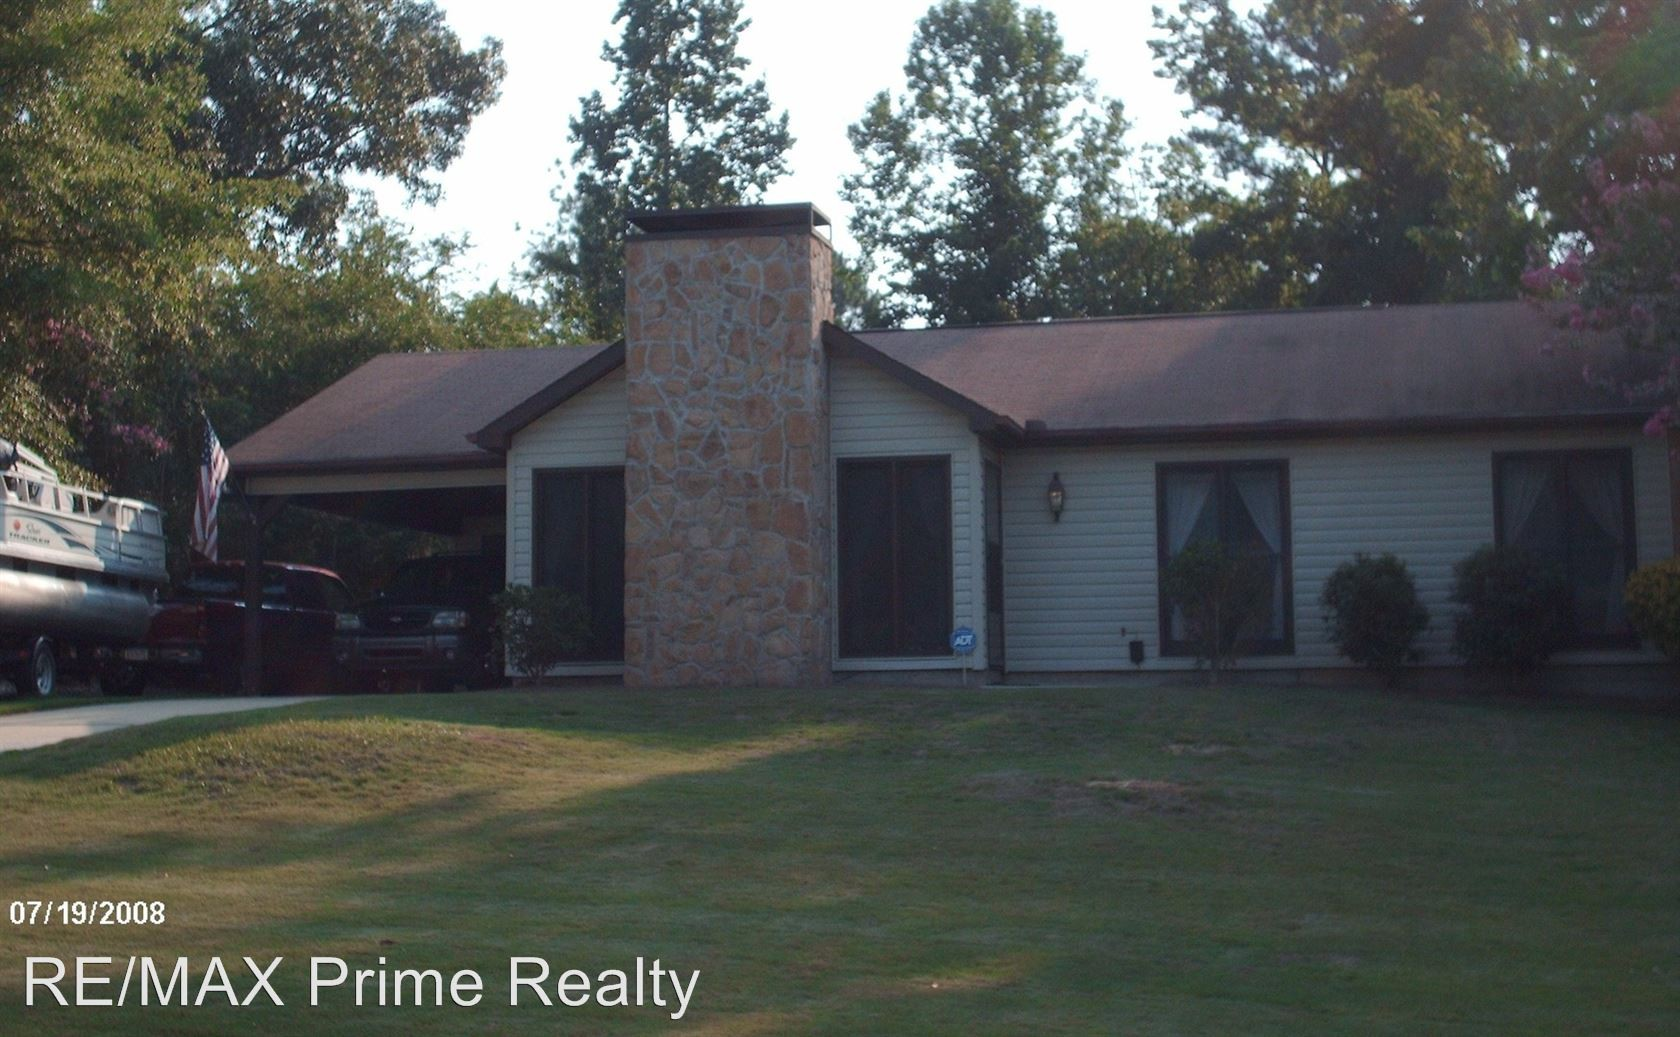 6120 goodwin dr columbus ga 31909 3 bedroom house for rent for